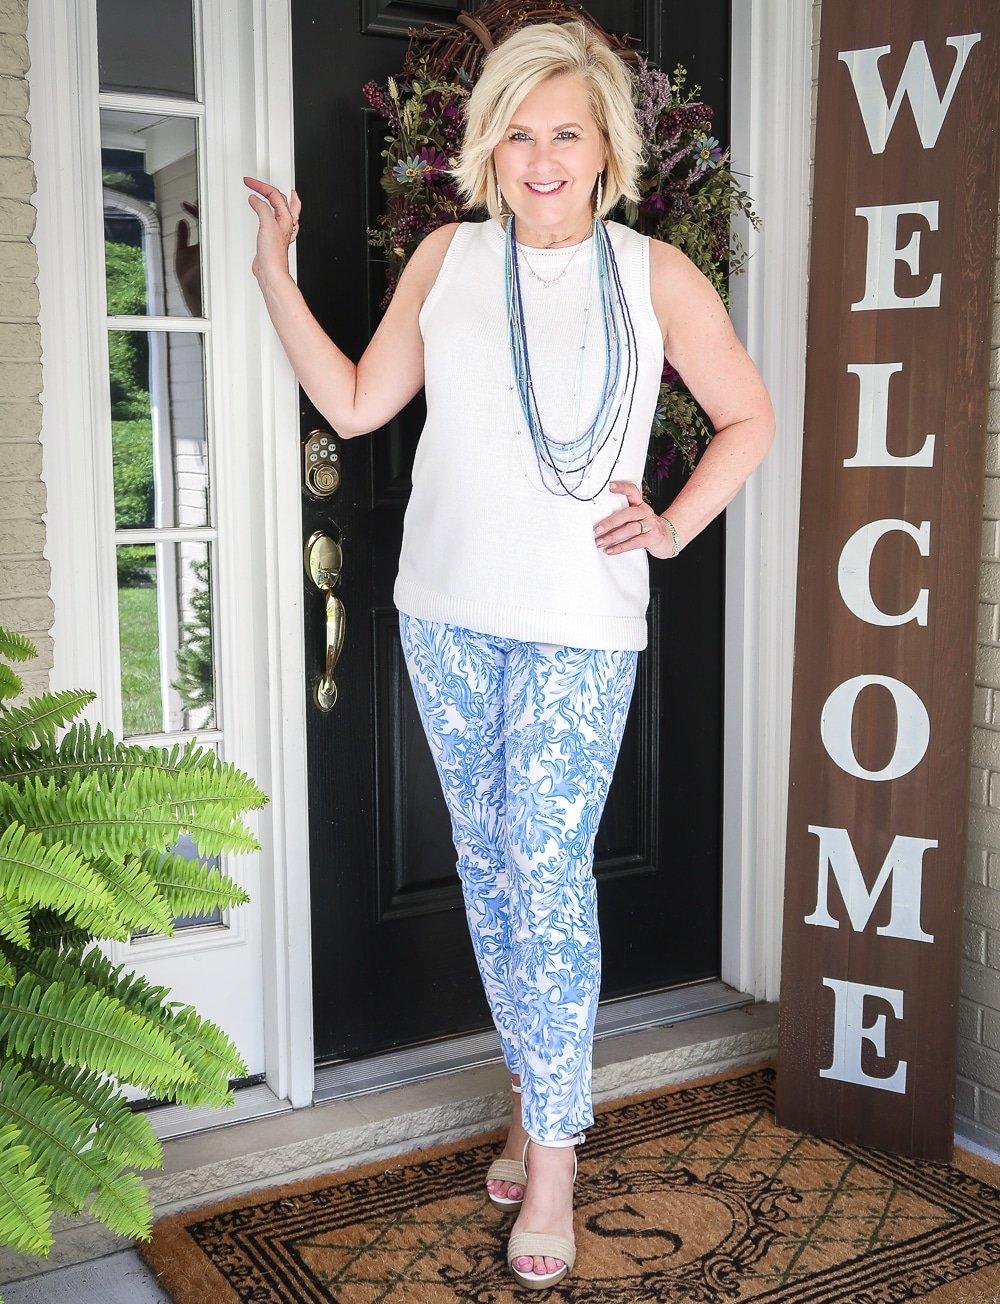 Fashion Blogger 50 Is Not Old is wearing a classic blue and white outfit. A white sweater, blue and white printed ankle pants from Lilly Pulitzer and espadrille wedges